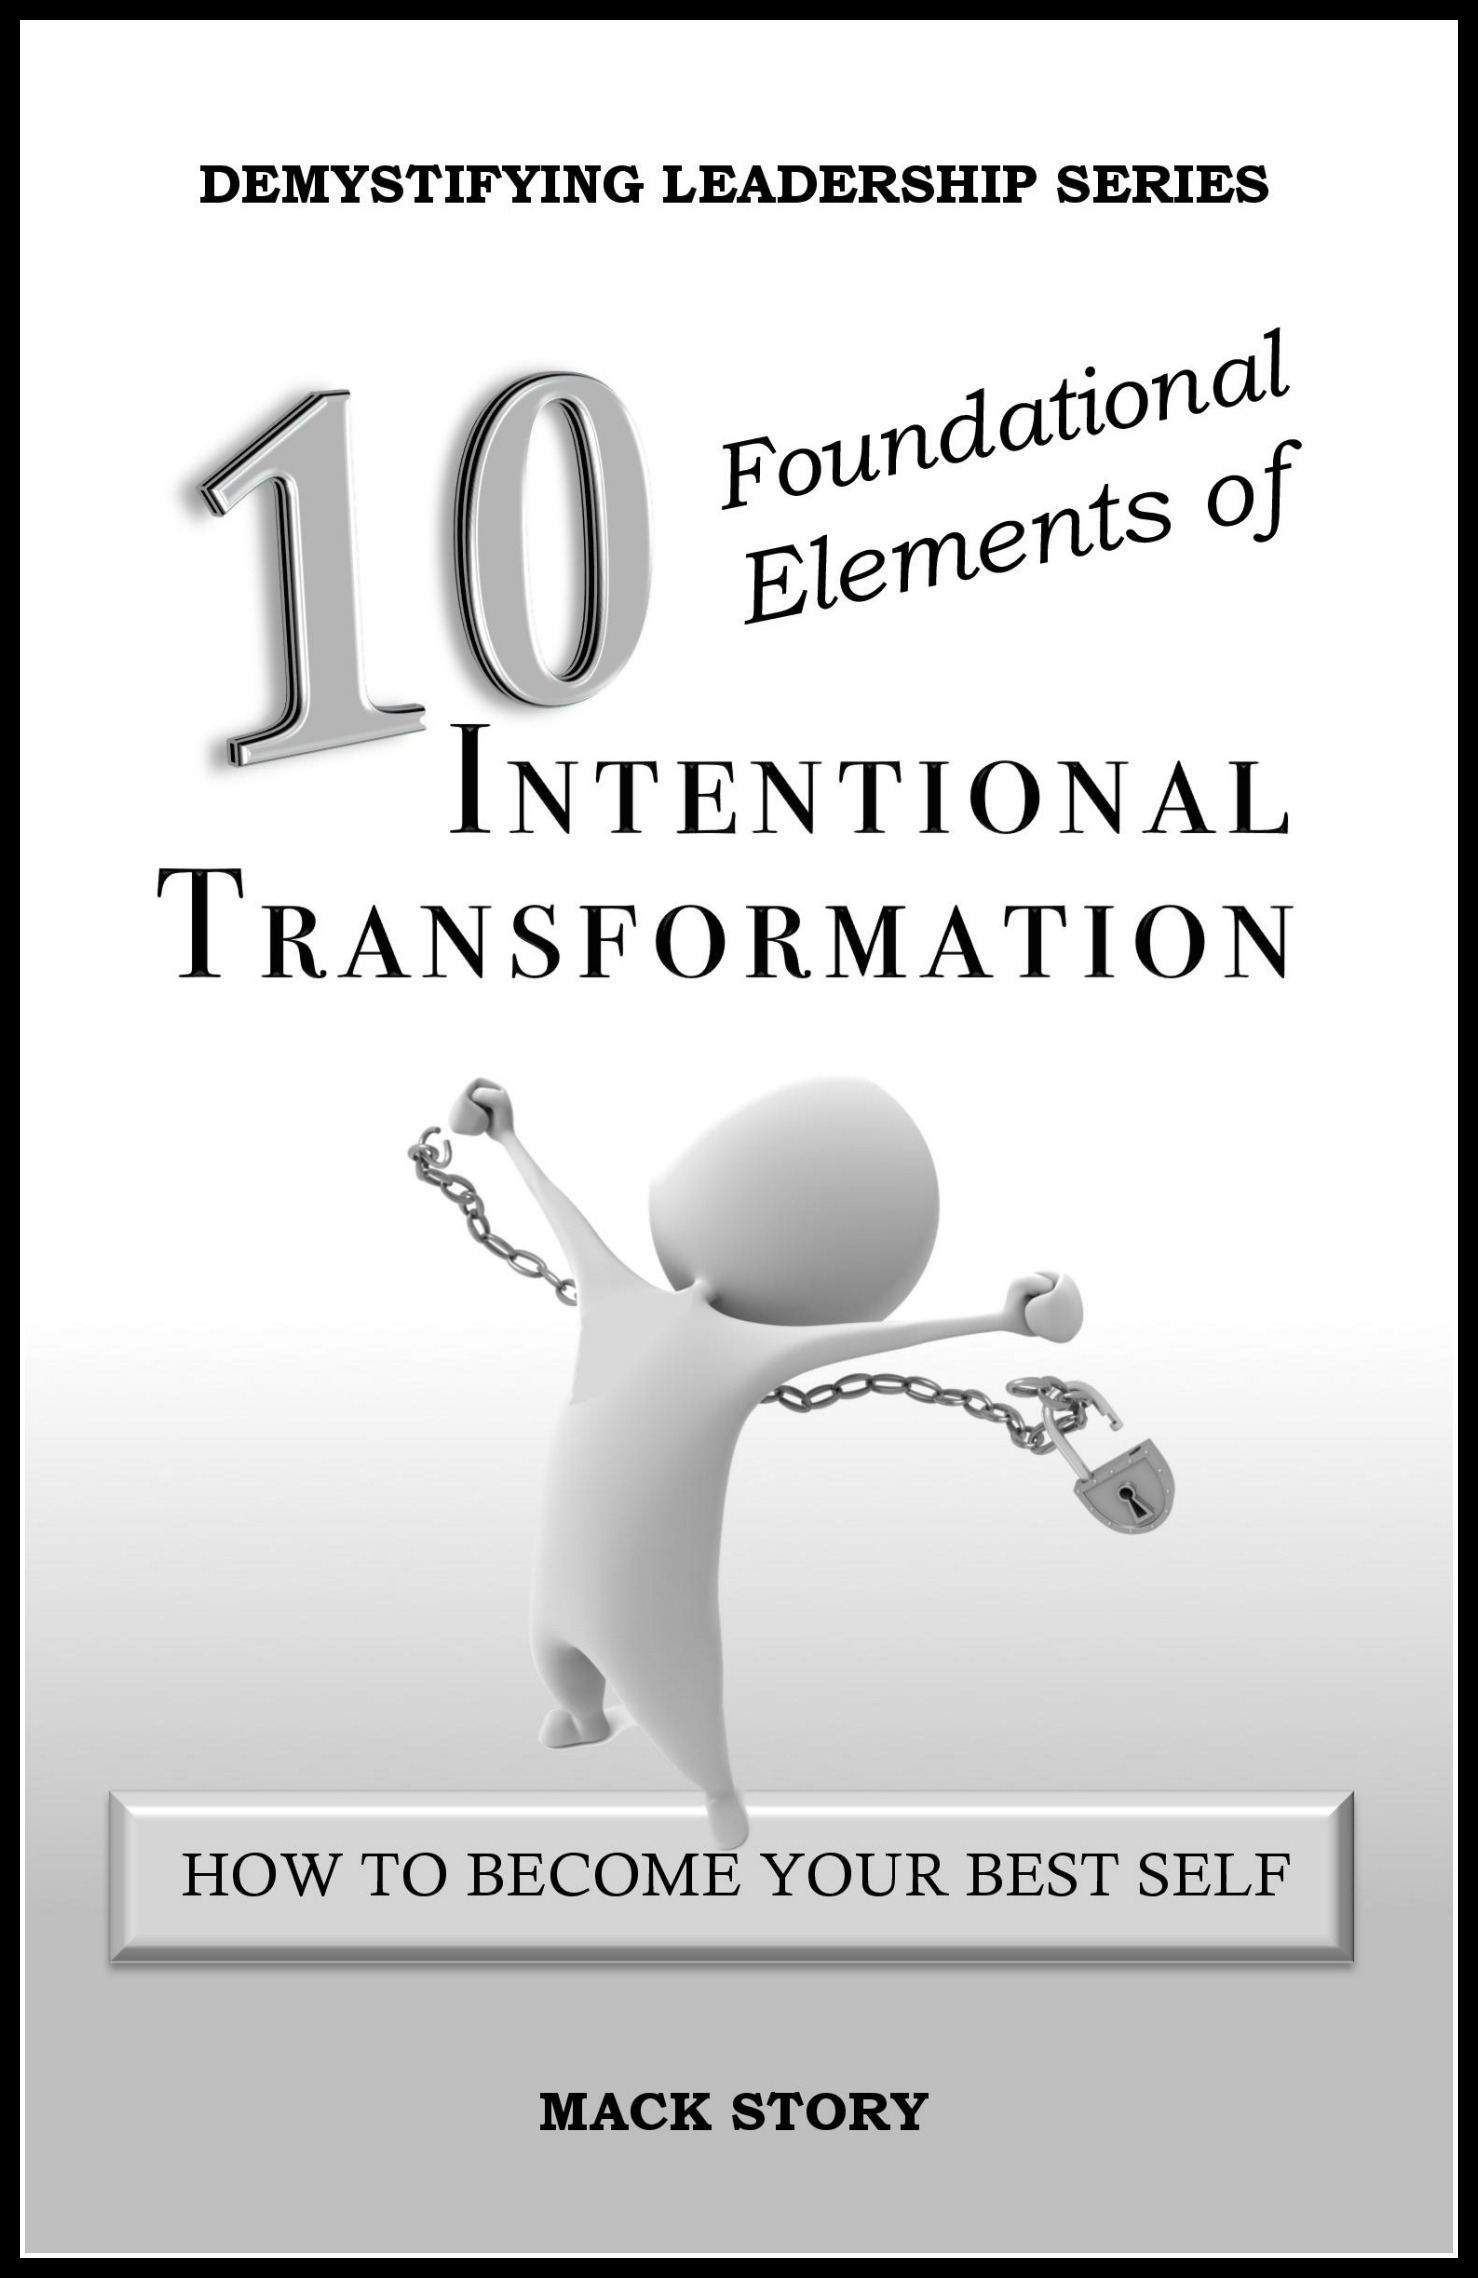 10 Foundational Elements of Intentional Transformation 0029